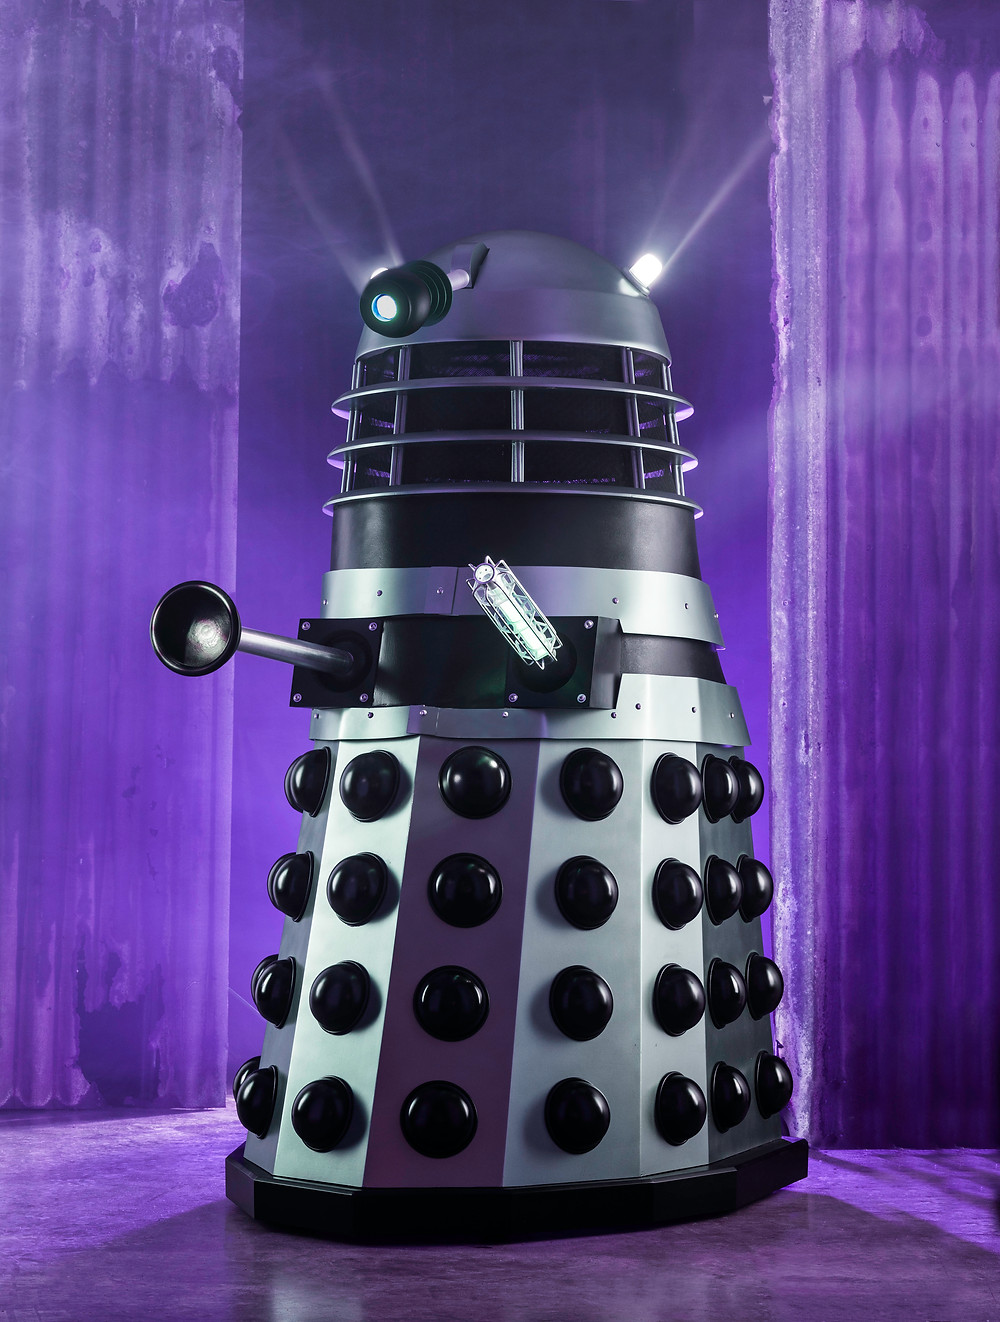 A life size replica model of a 1963 Dalek from the first series of Dr Who.